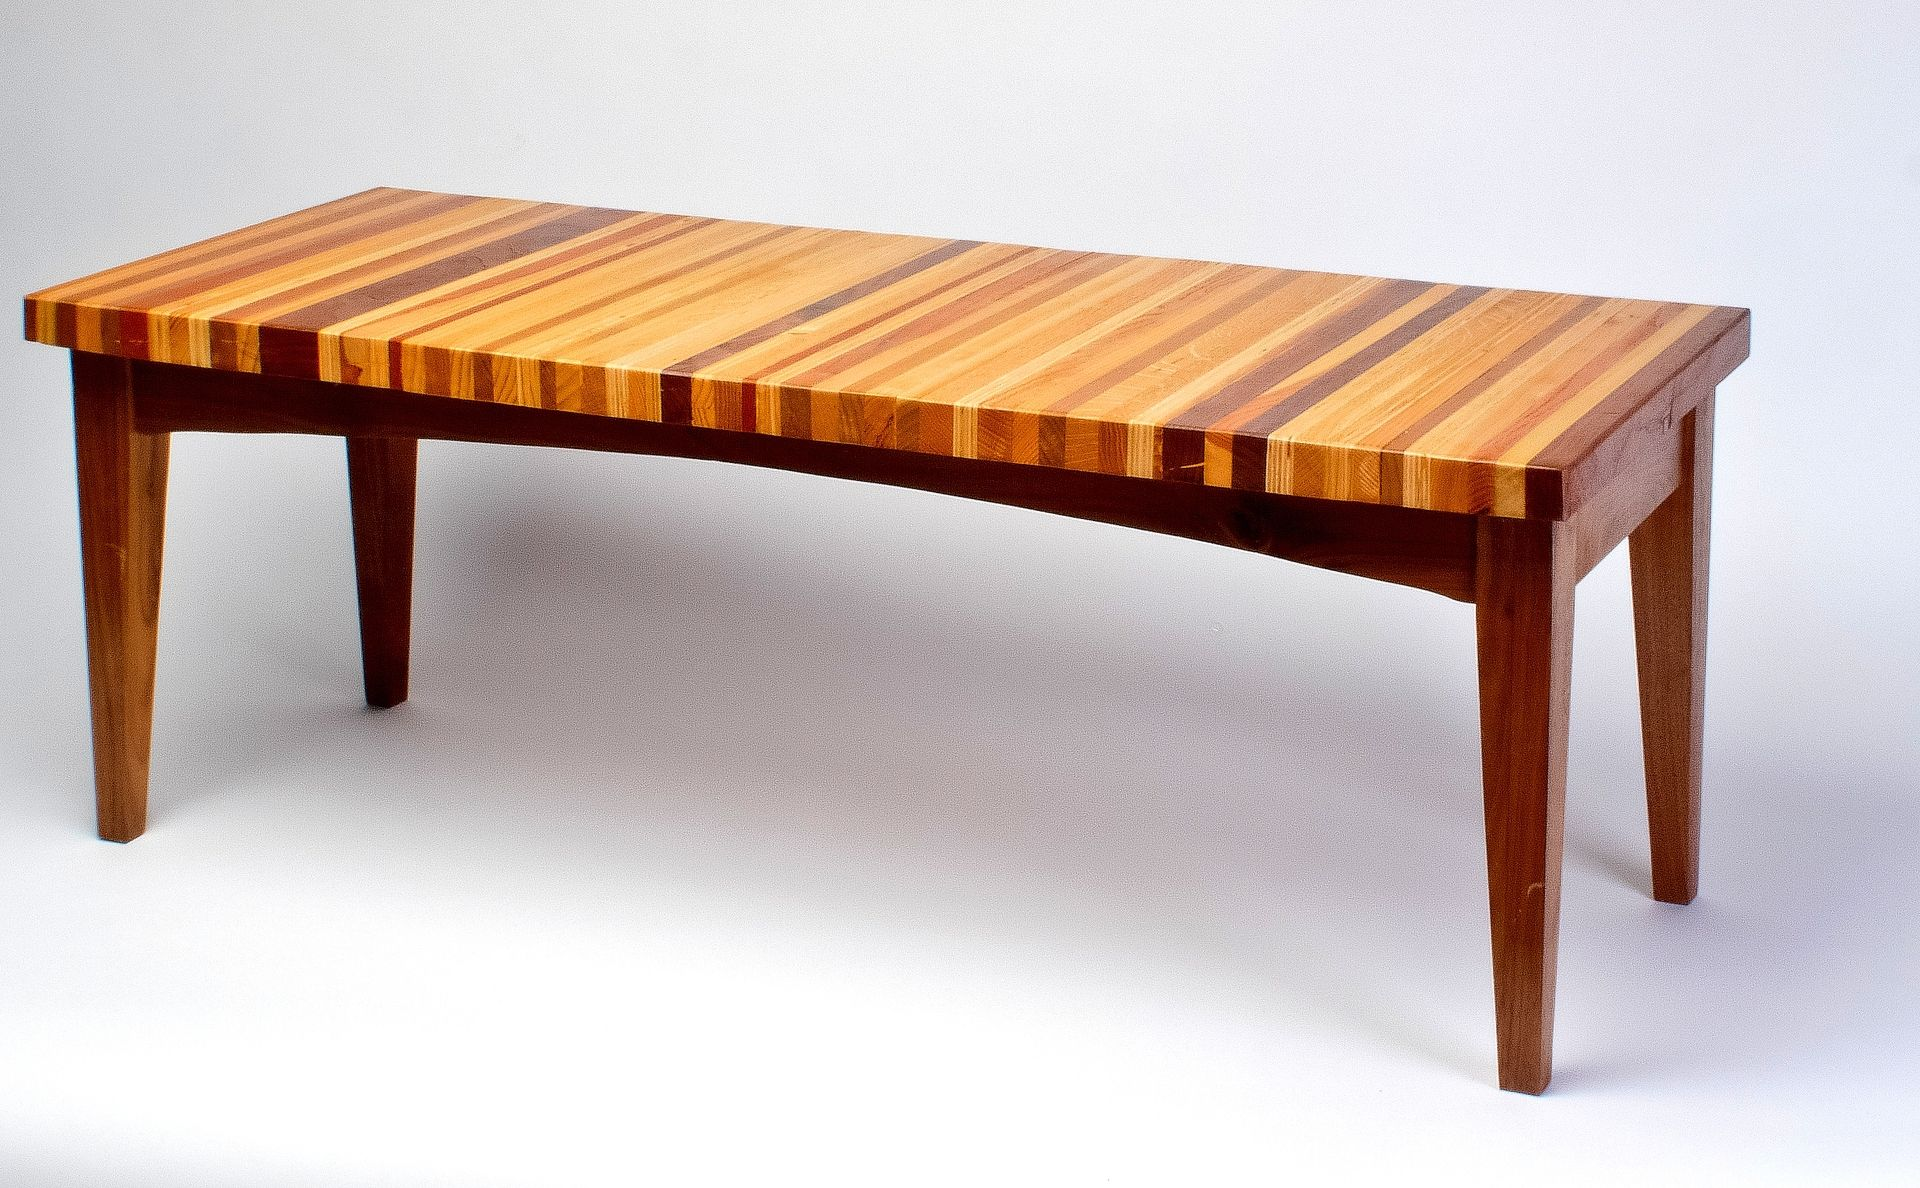 Hand Made Laminated Wood Coffee Table by Un mon Woodworks